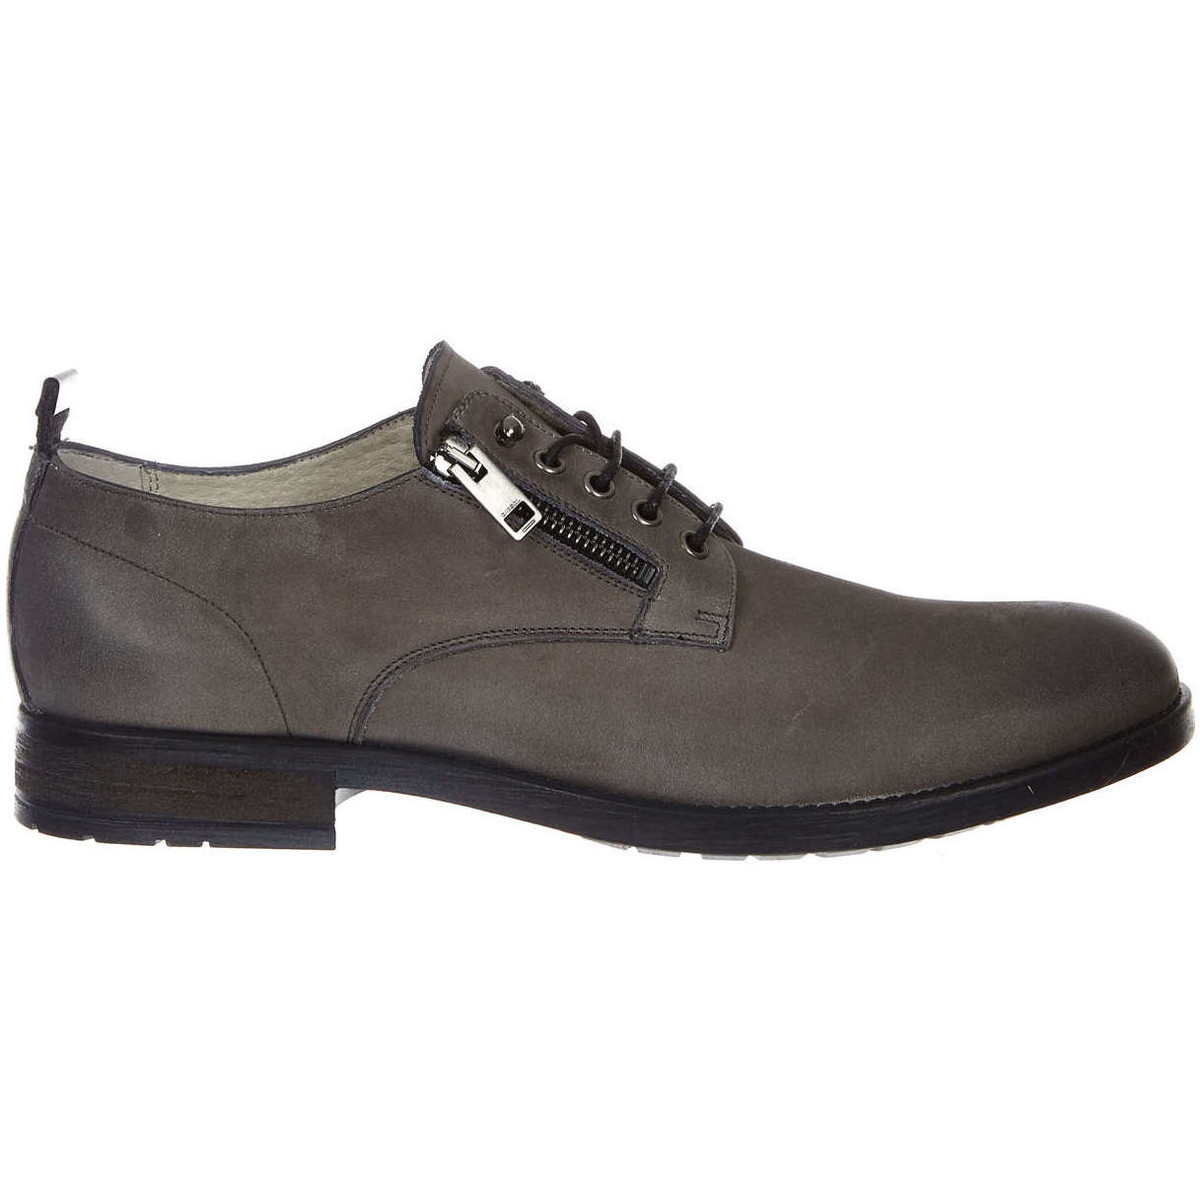 diesel chaussure lowyy taupe homme taupe chaussures derbies homme 215 95. Black Bedroom Furniture Sets. Home Design Ideas